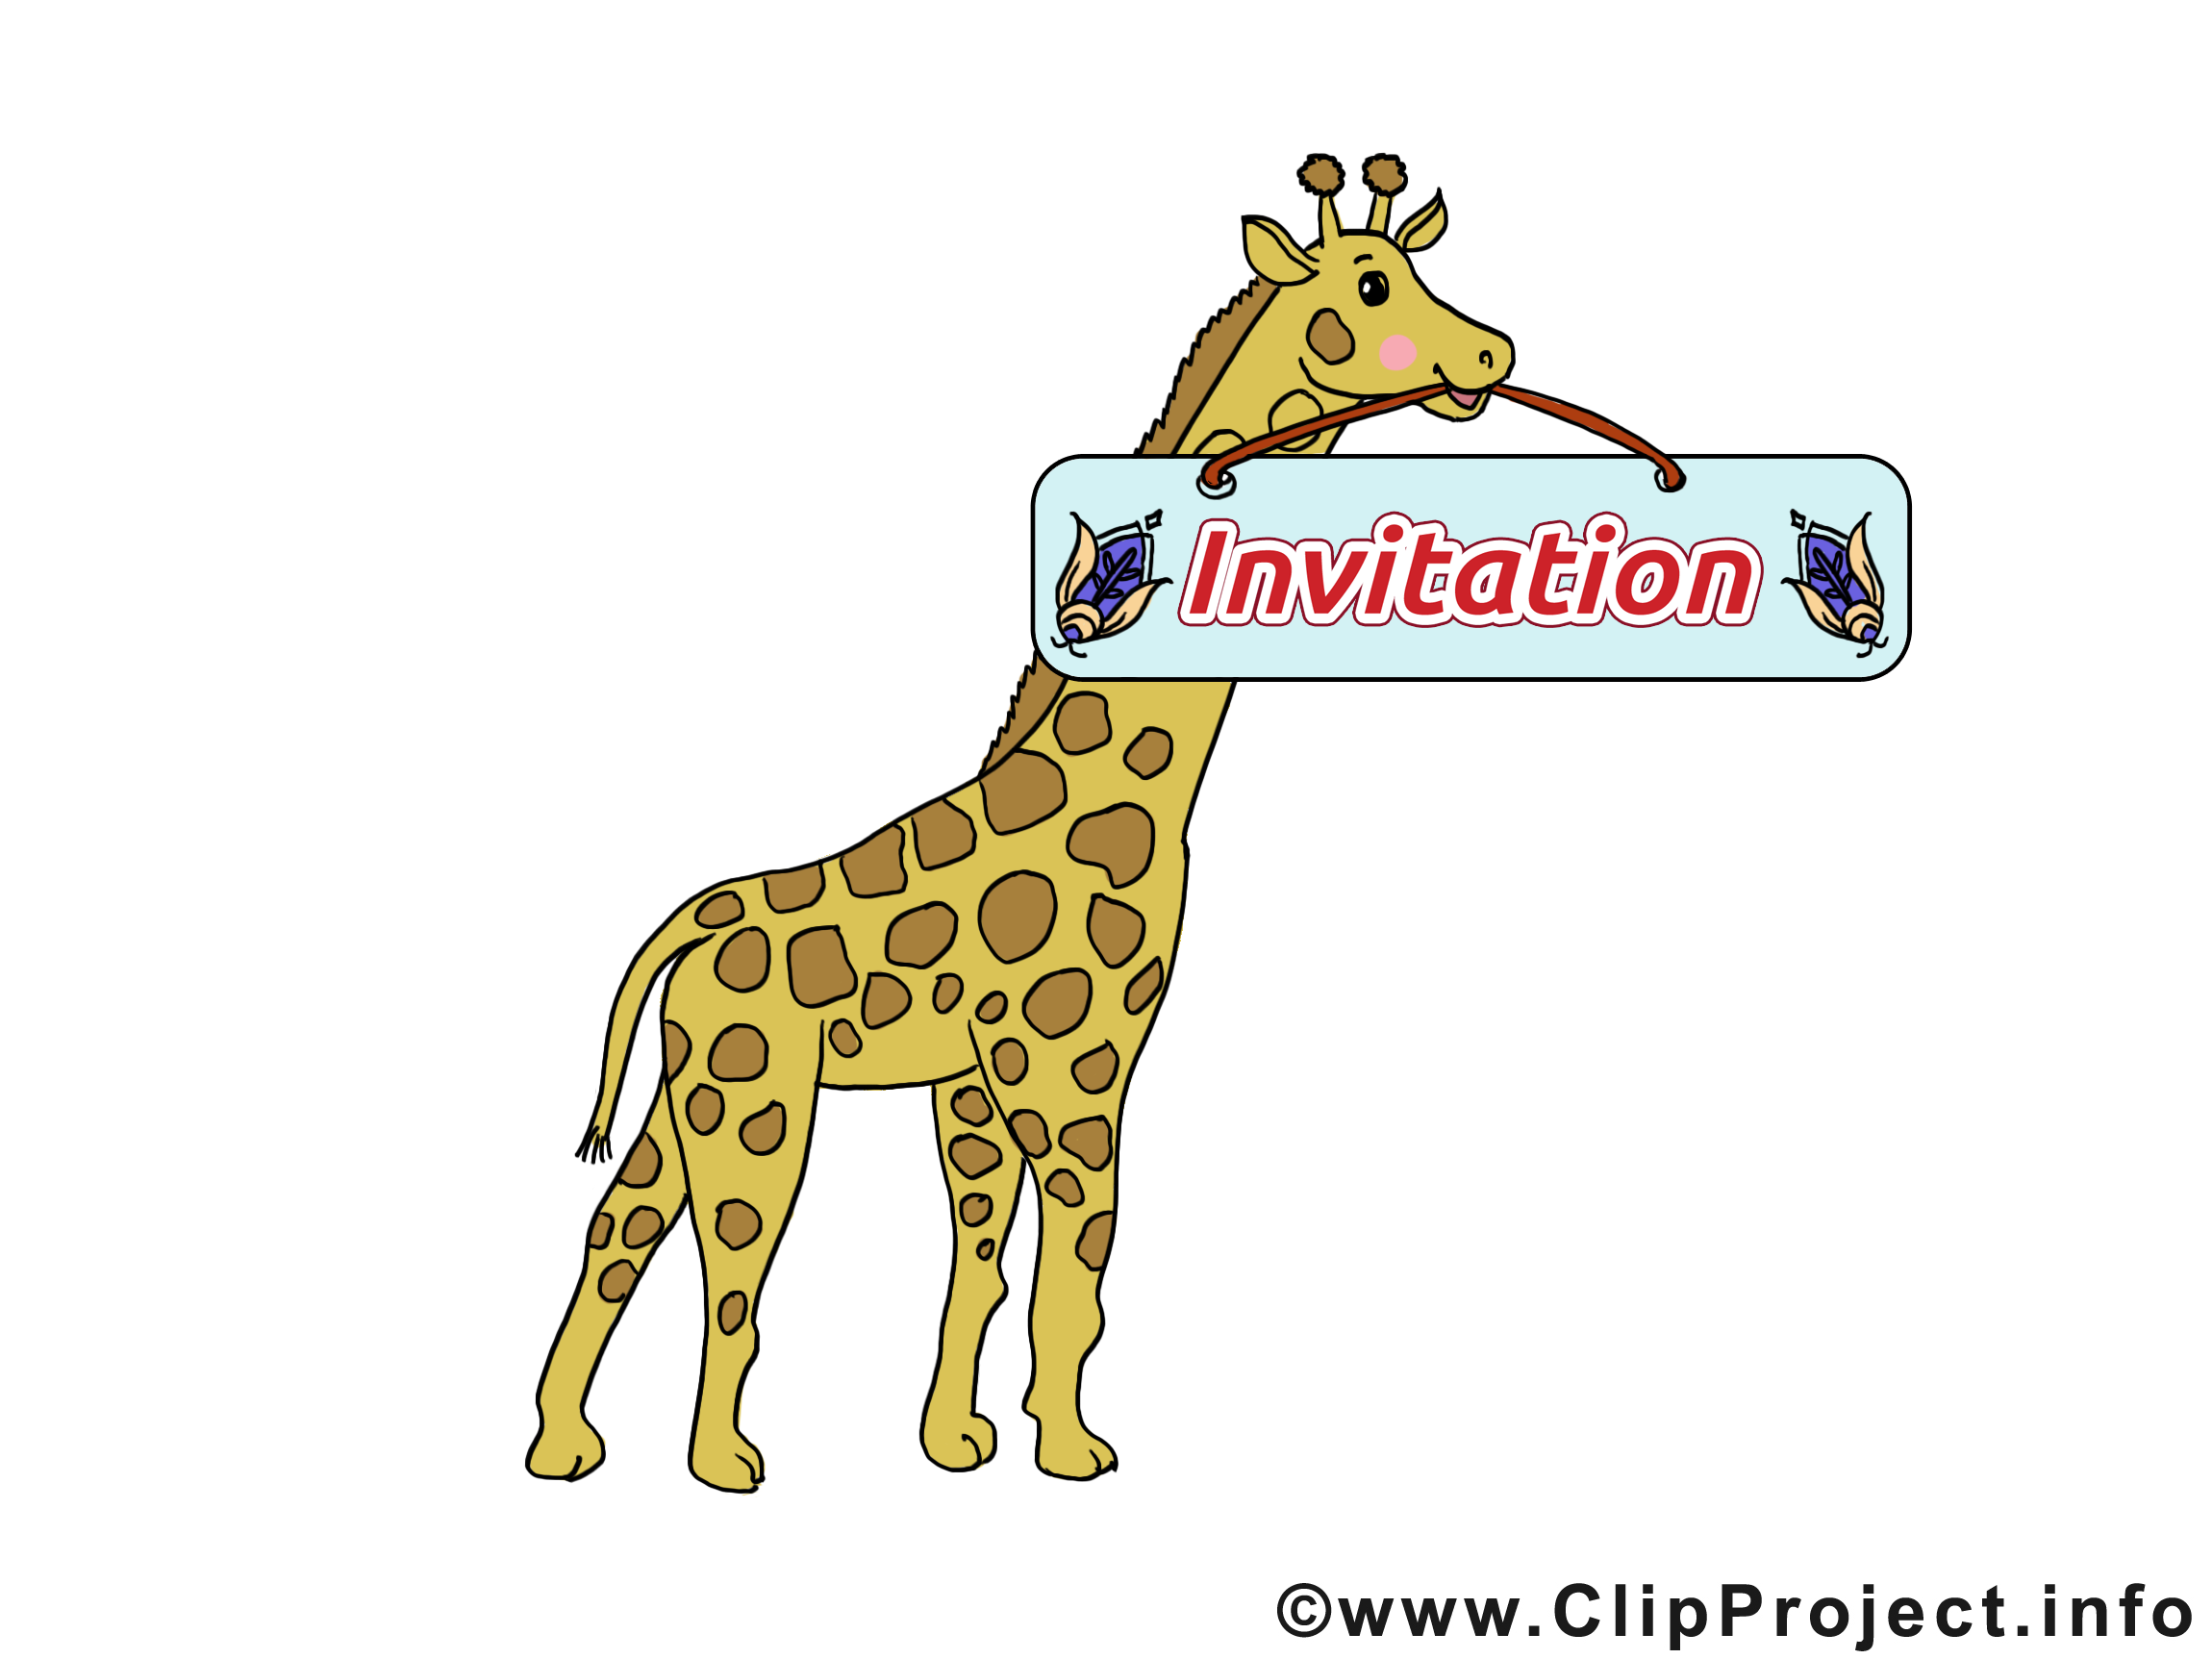 Girafe clip arts gratuits - Invitation illustrations